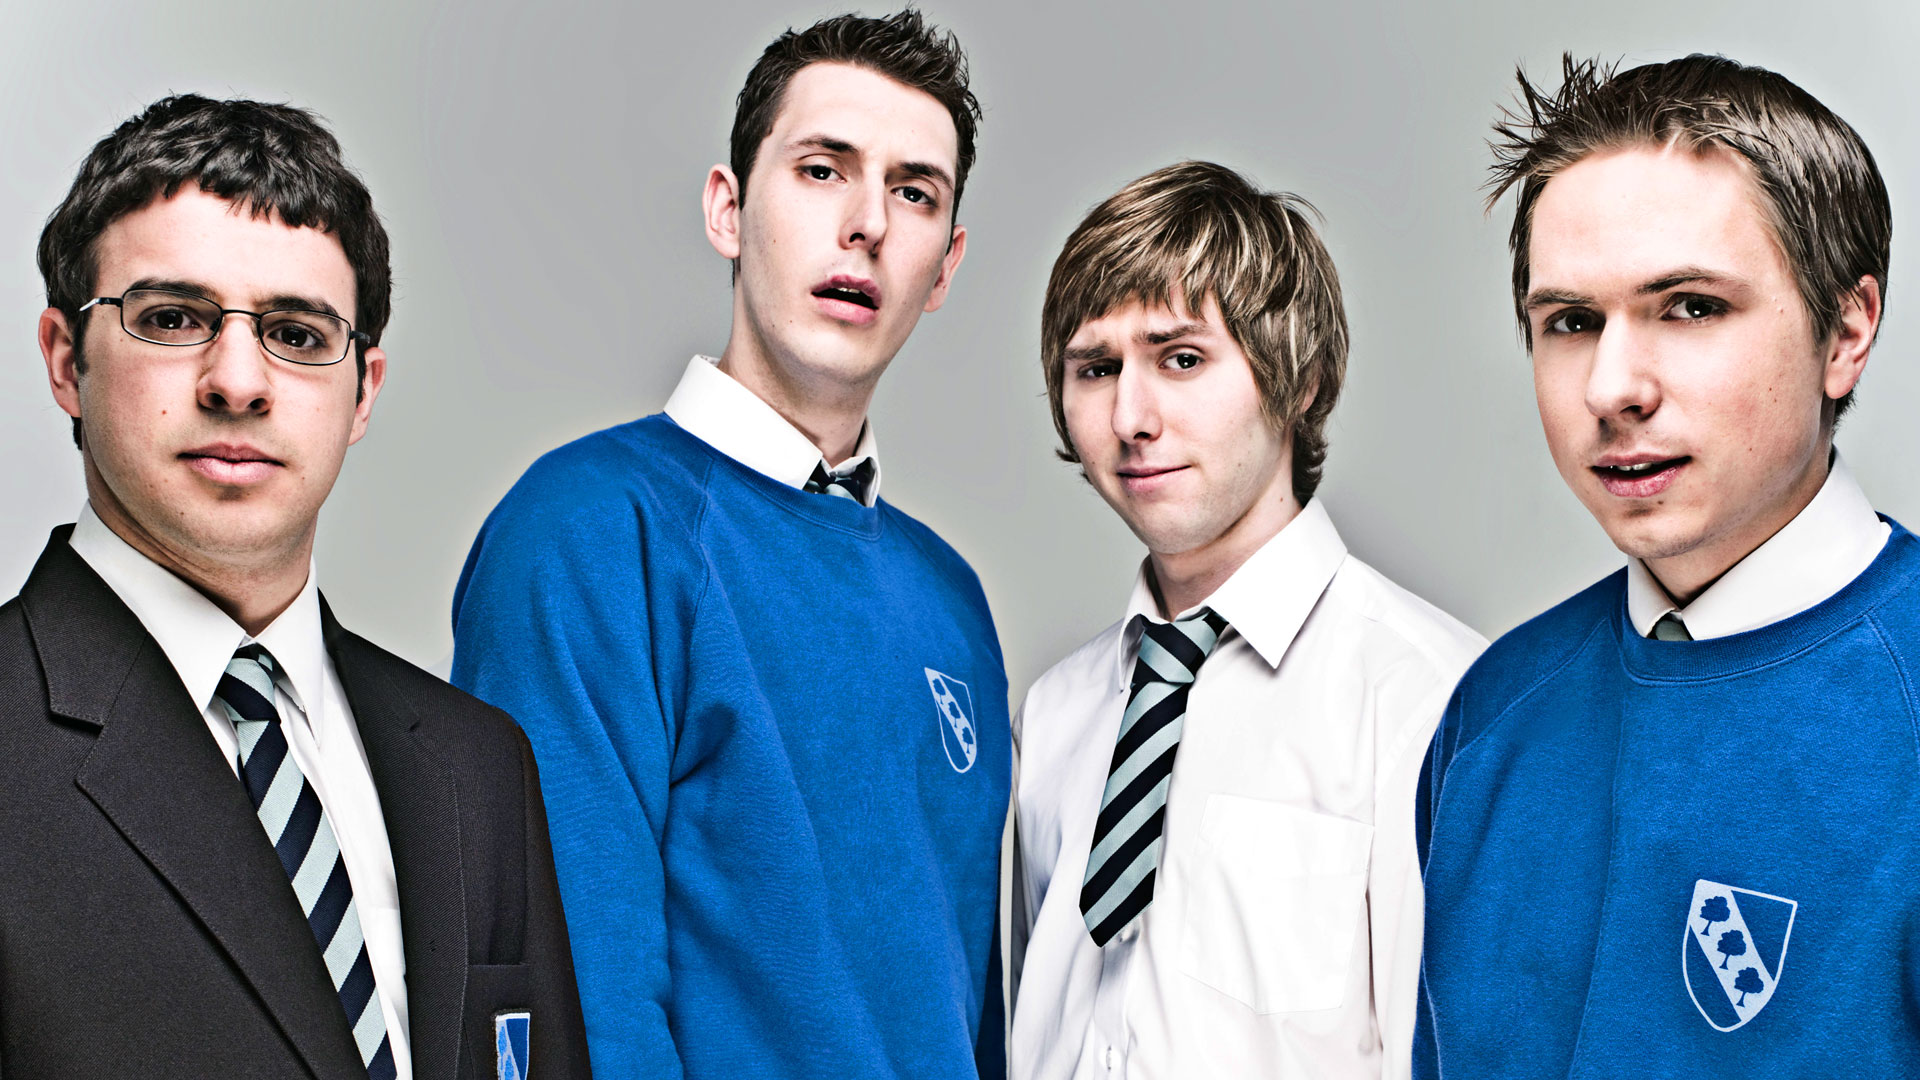 the inbetweeners s01e01 dailymotion